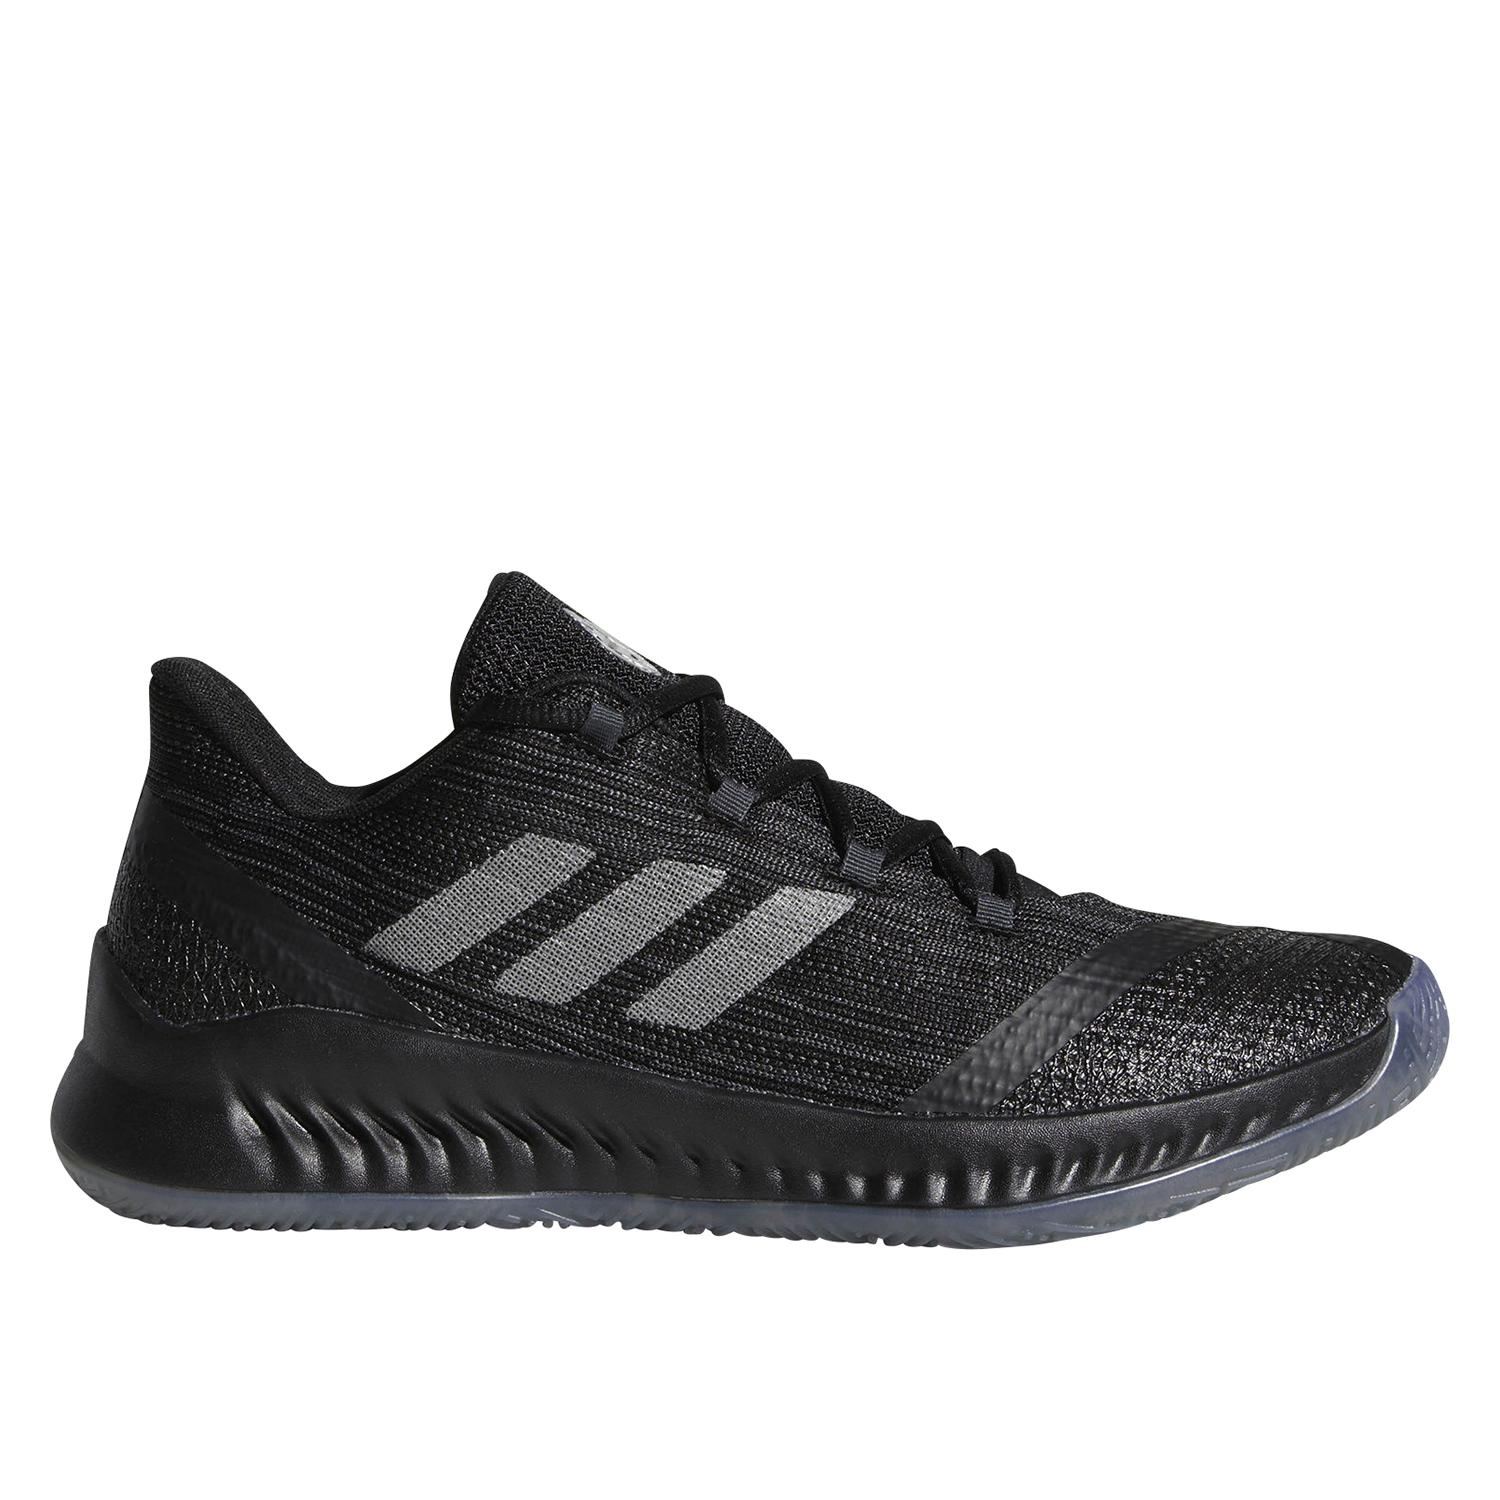 8a43ce89b401 adidas Harden B E X Men s Basketball Shoe in Black - Intersport Australia